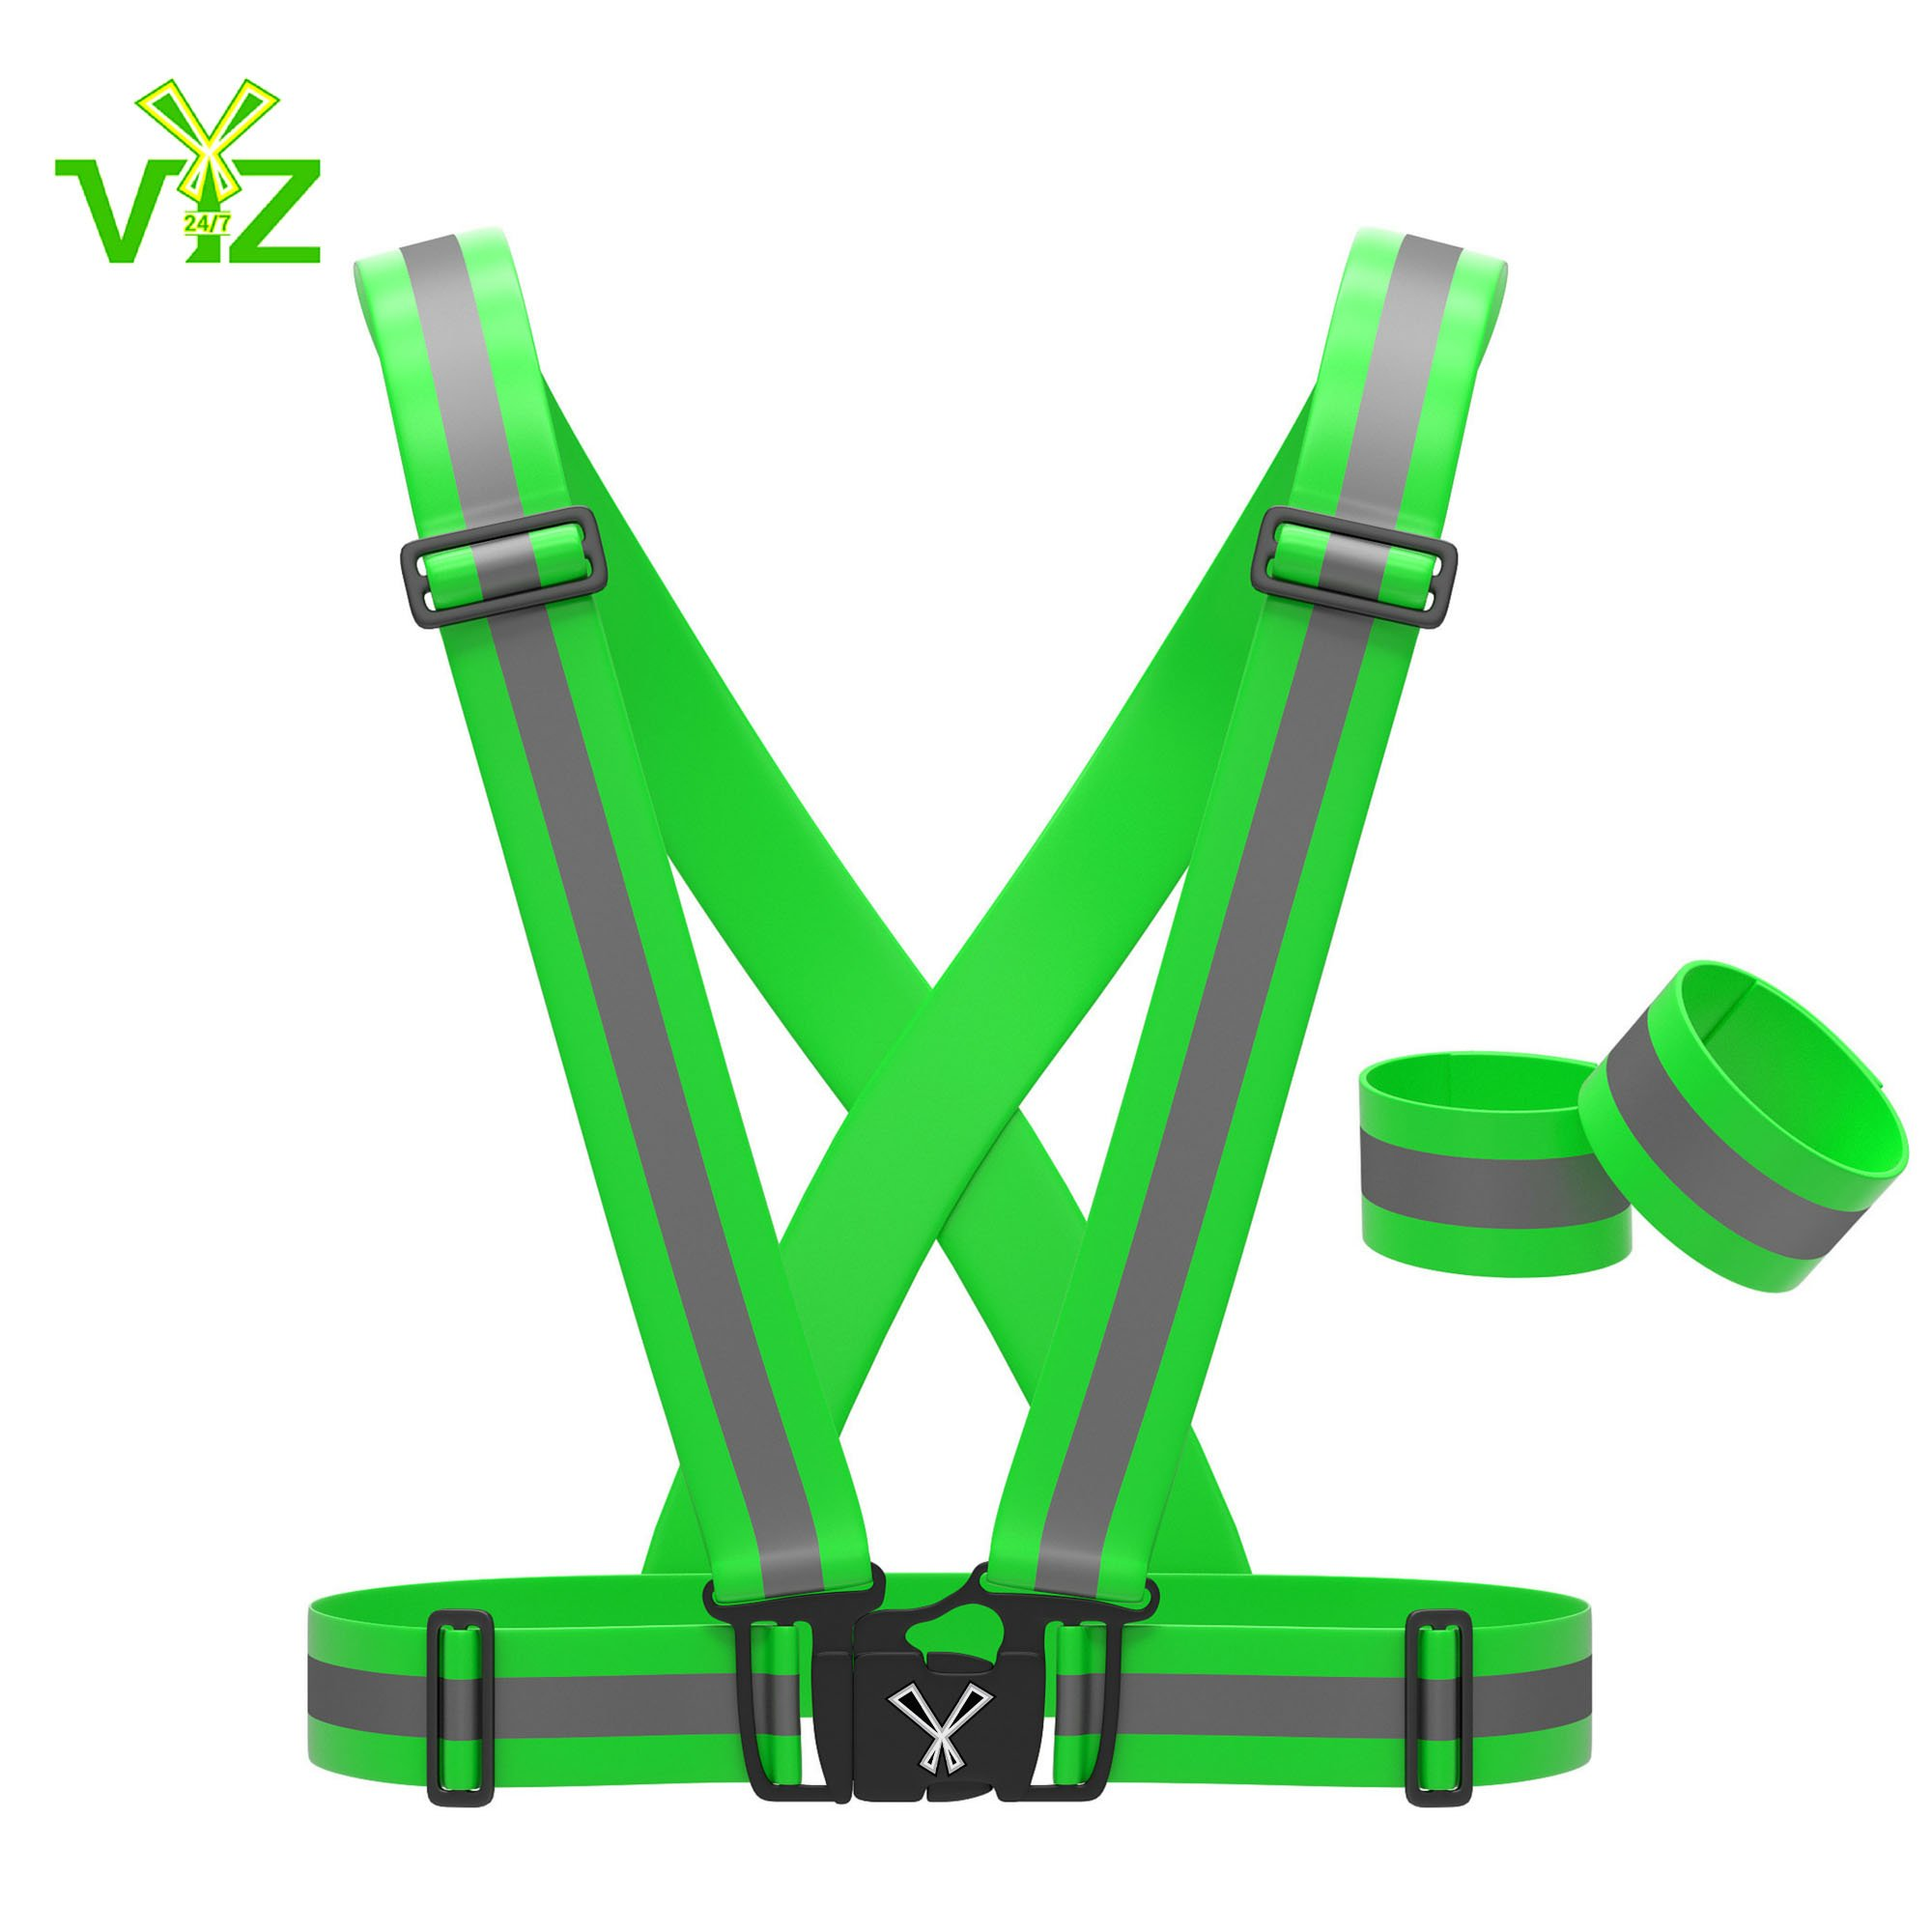 247 Viz Reflective Vest with Set of Hi Vis Bands, Fully Adjustable & Multi-purpose: Running, Cycling Gear, Motorcycle Safety, Dog Walking & More - High Visibility Neon Green, By